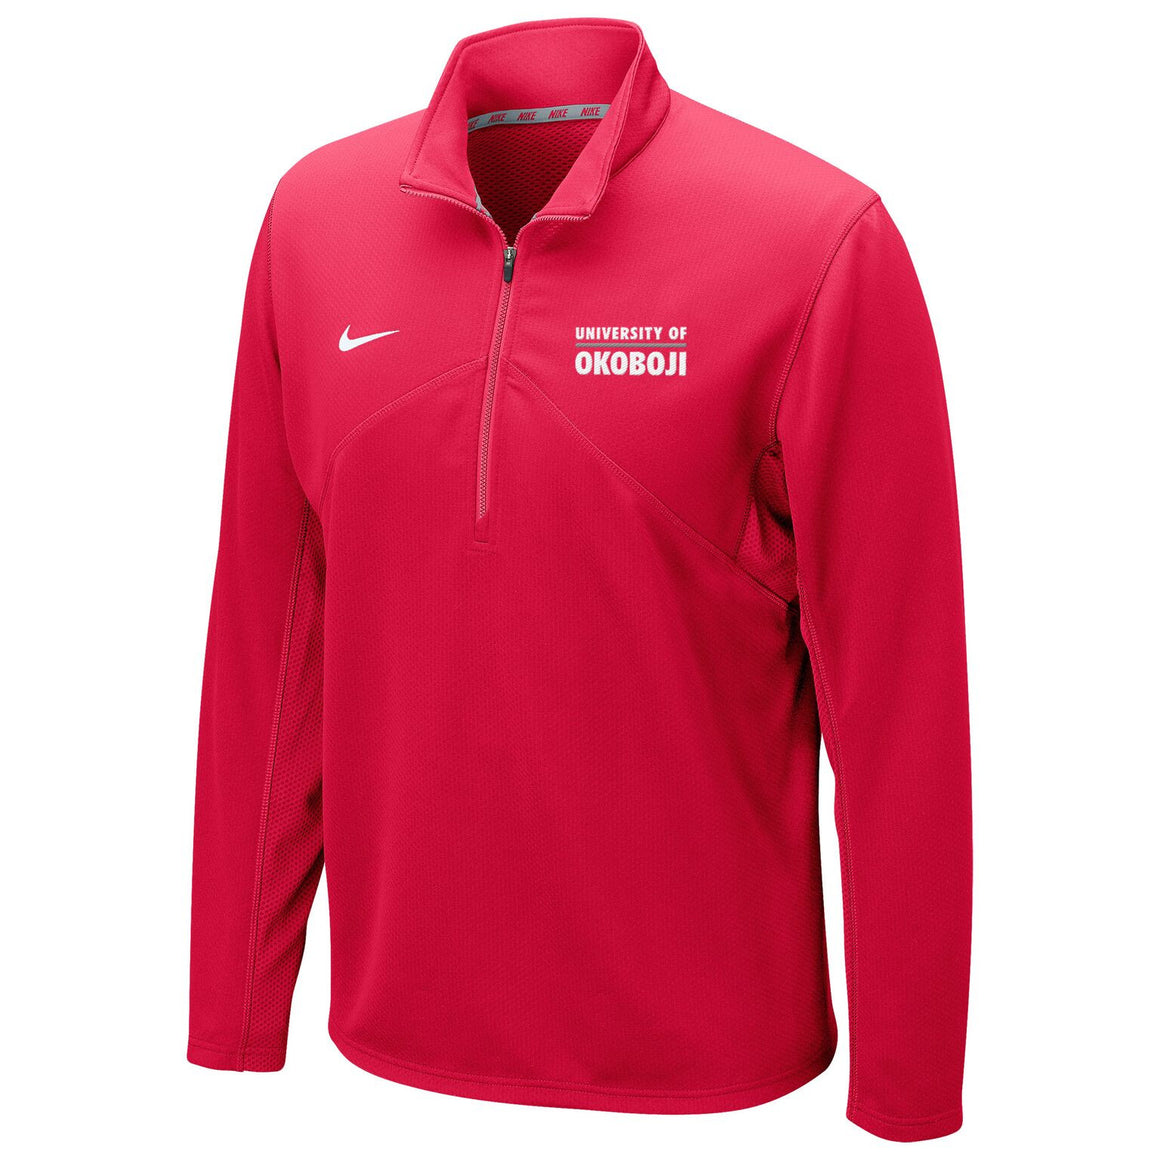 DRI-FIT TRAINING 1/4 ZIP U of O TOP - Red